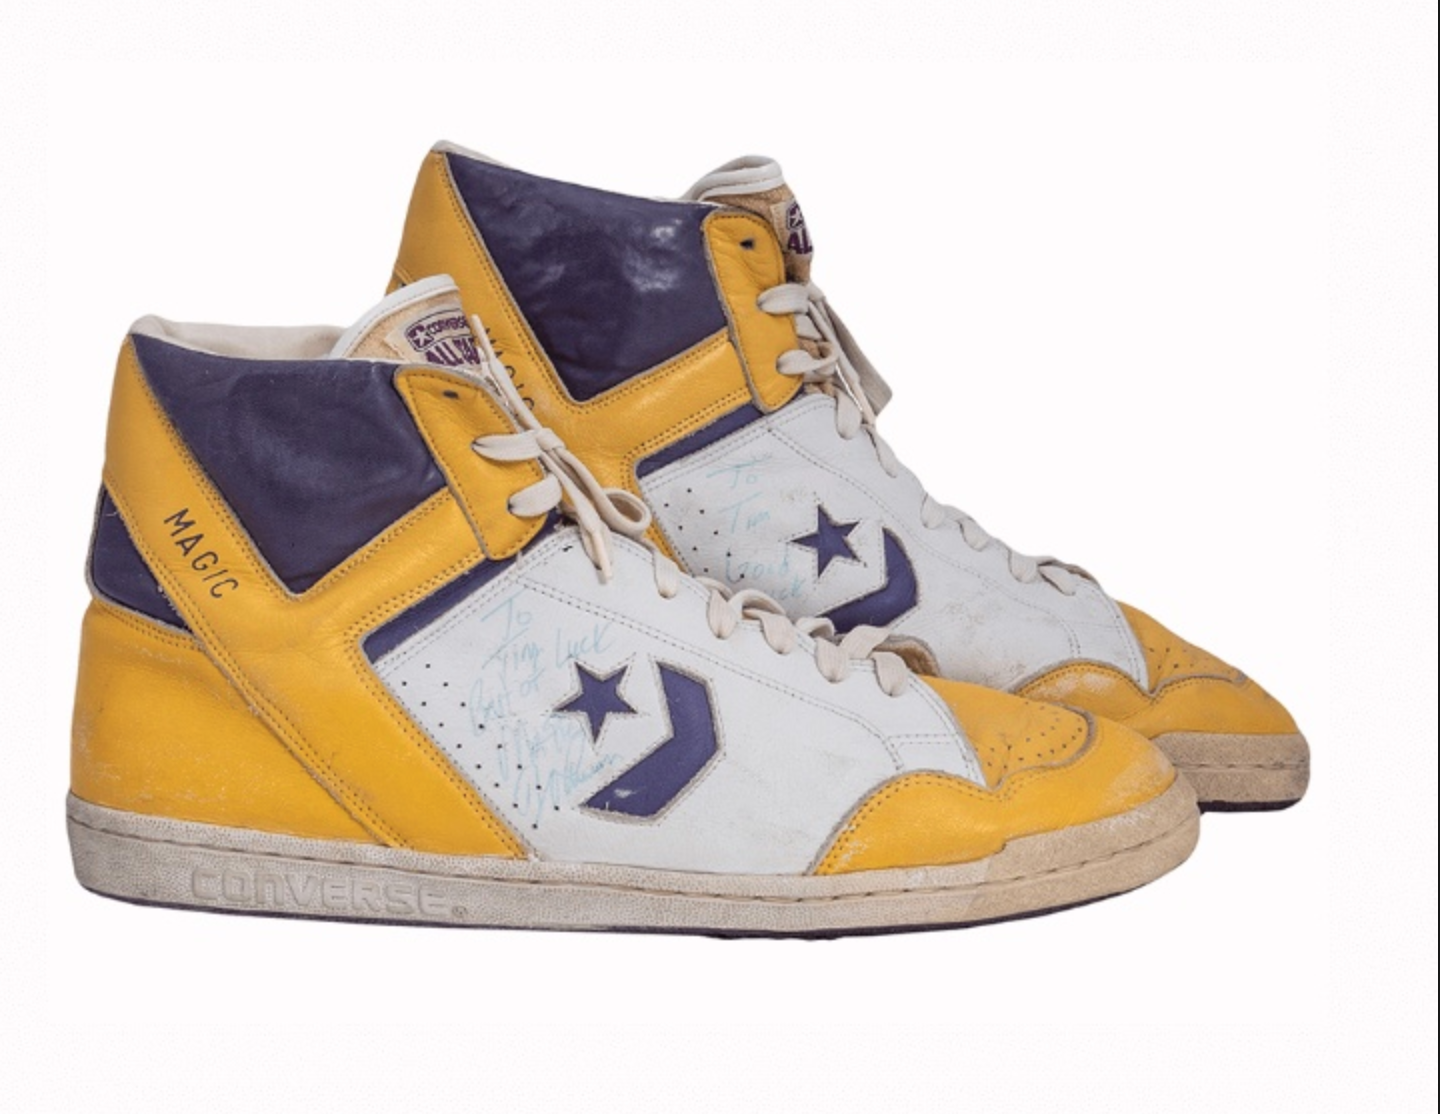 1987 Magic Johnson Game-Worn & Signed Sneakers from MVP/Finals Season